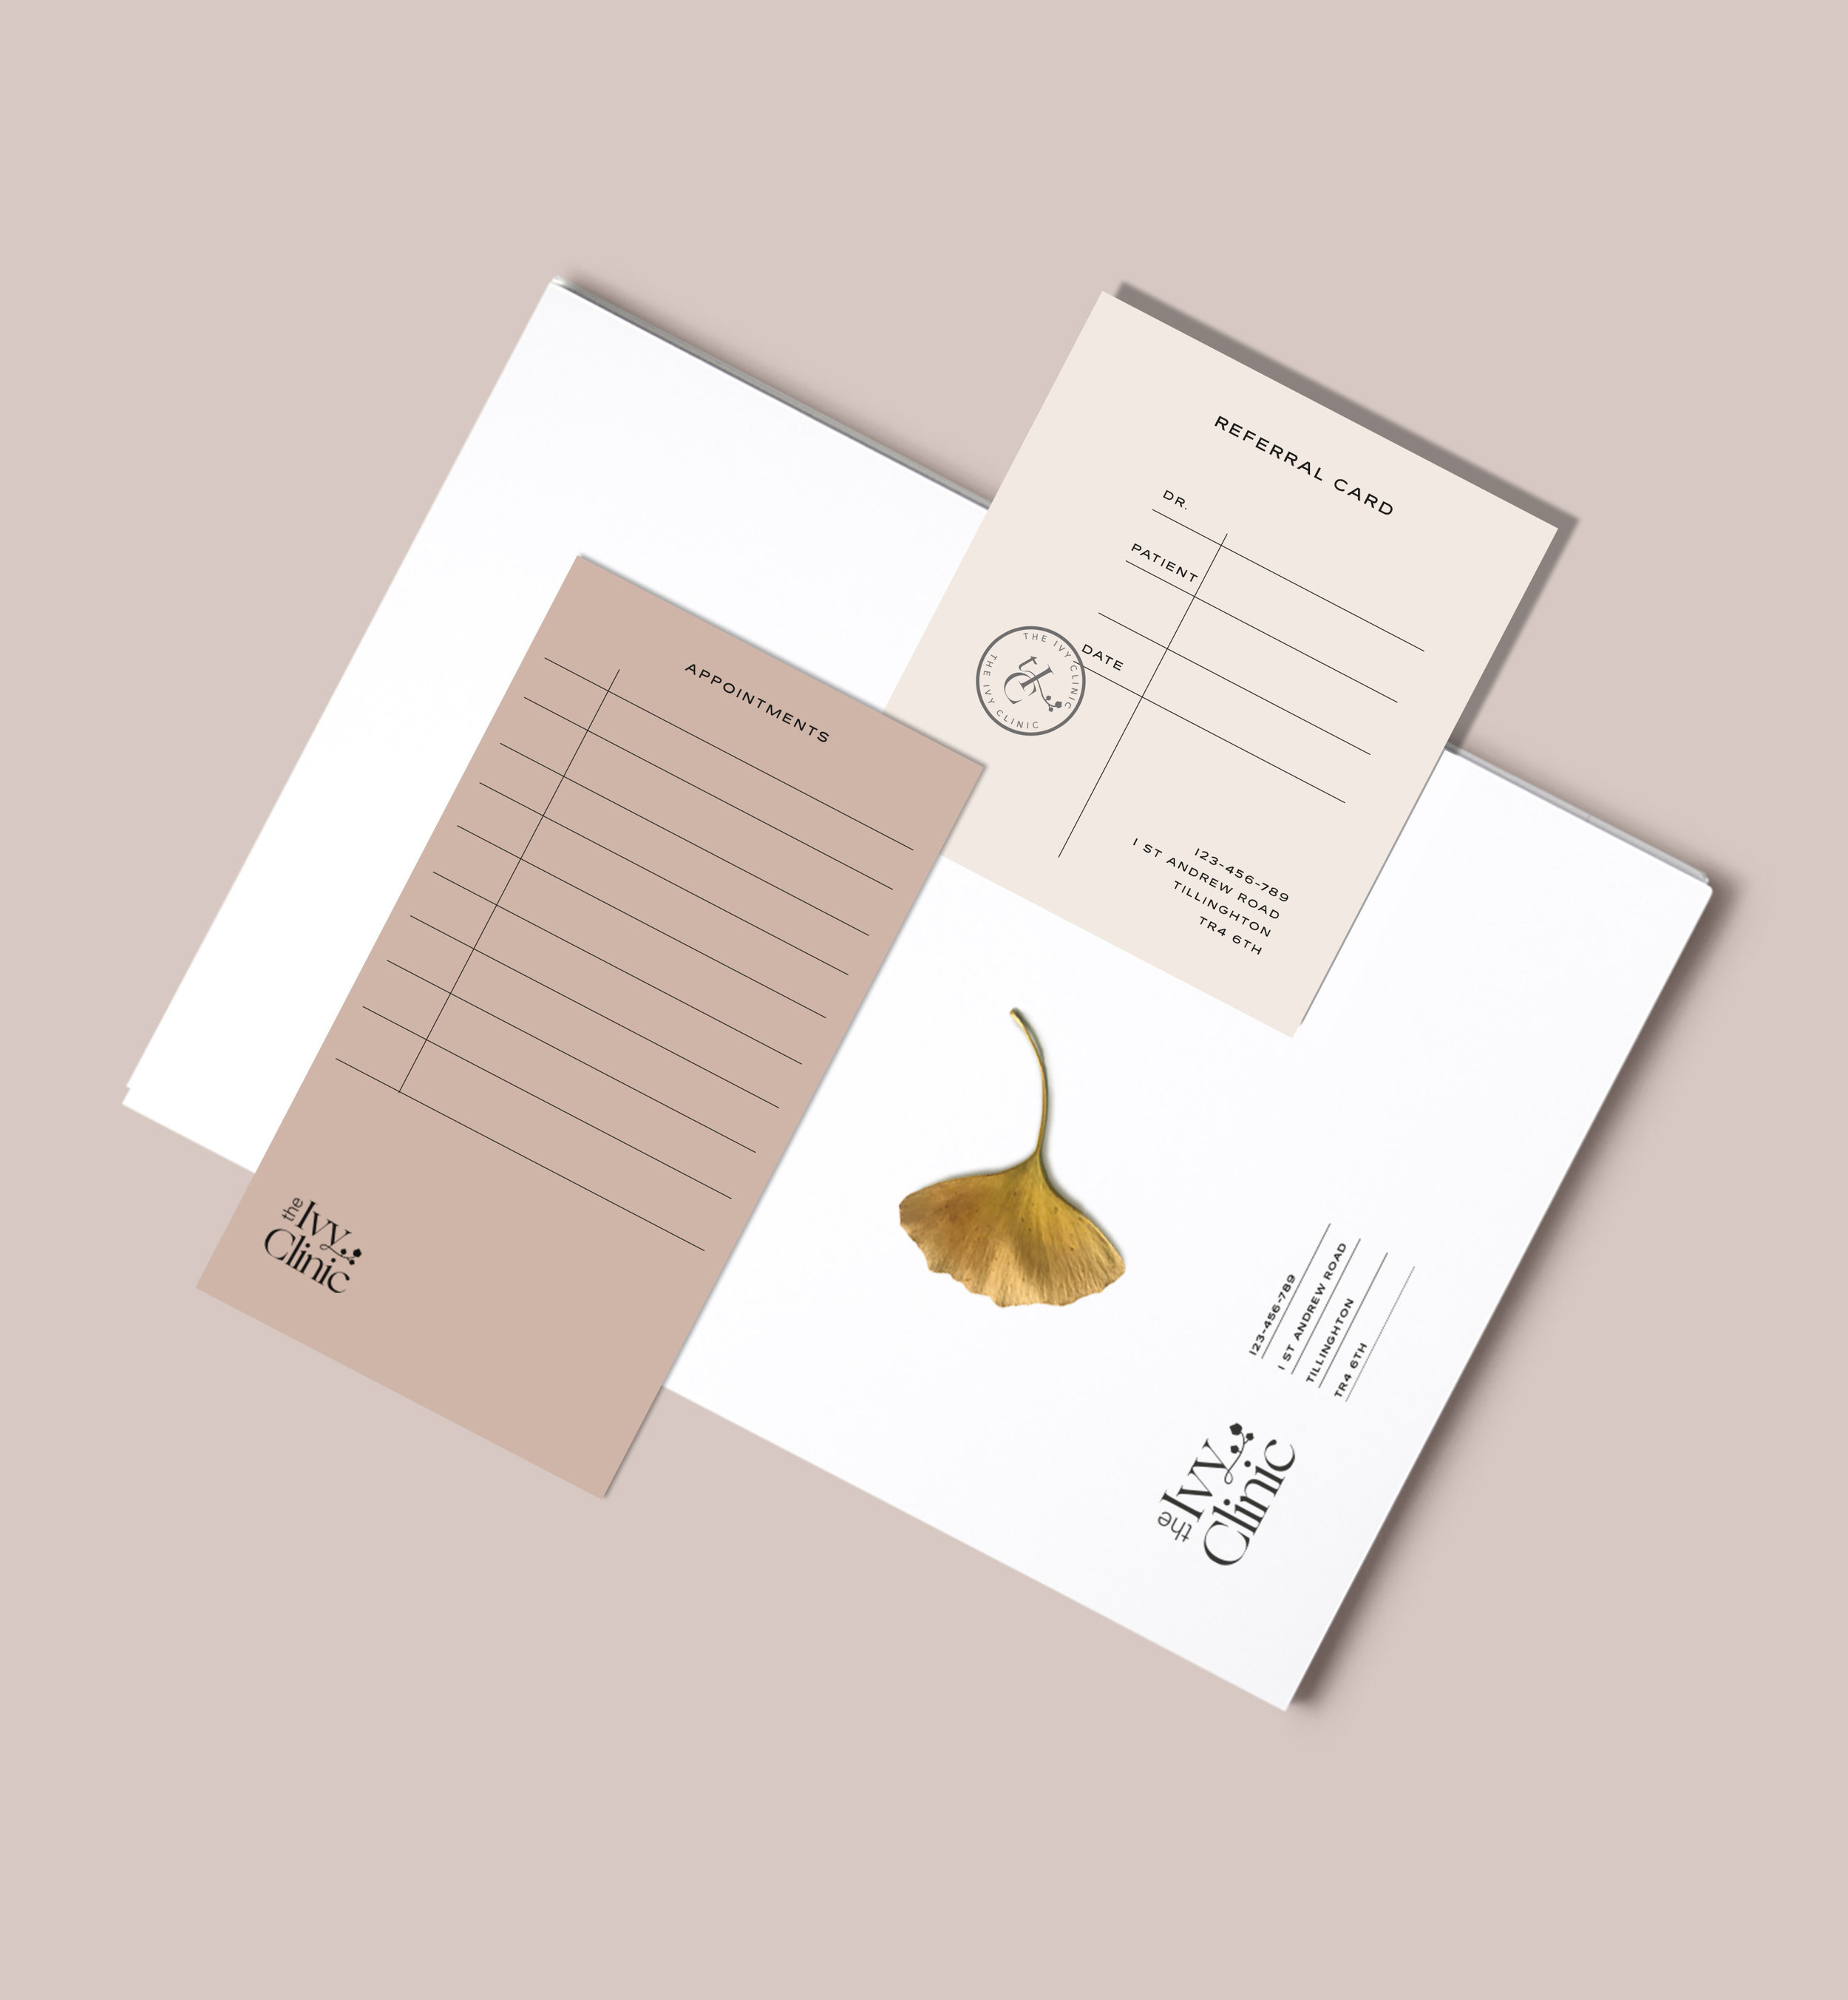 bbeauty-medical-clinic-stationary-loolaadesigns.jpg